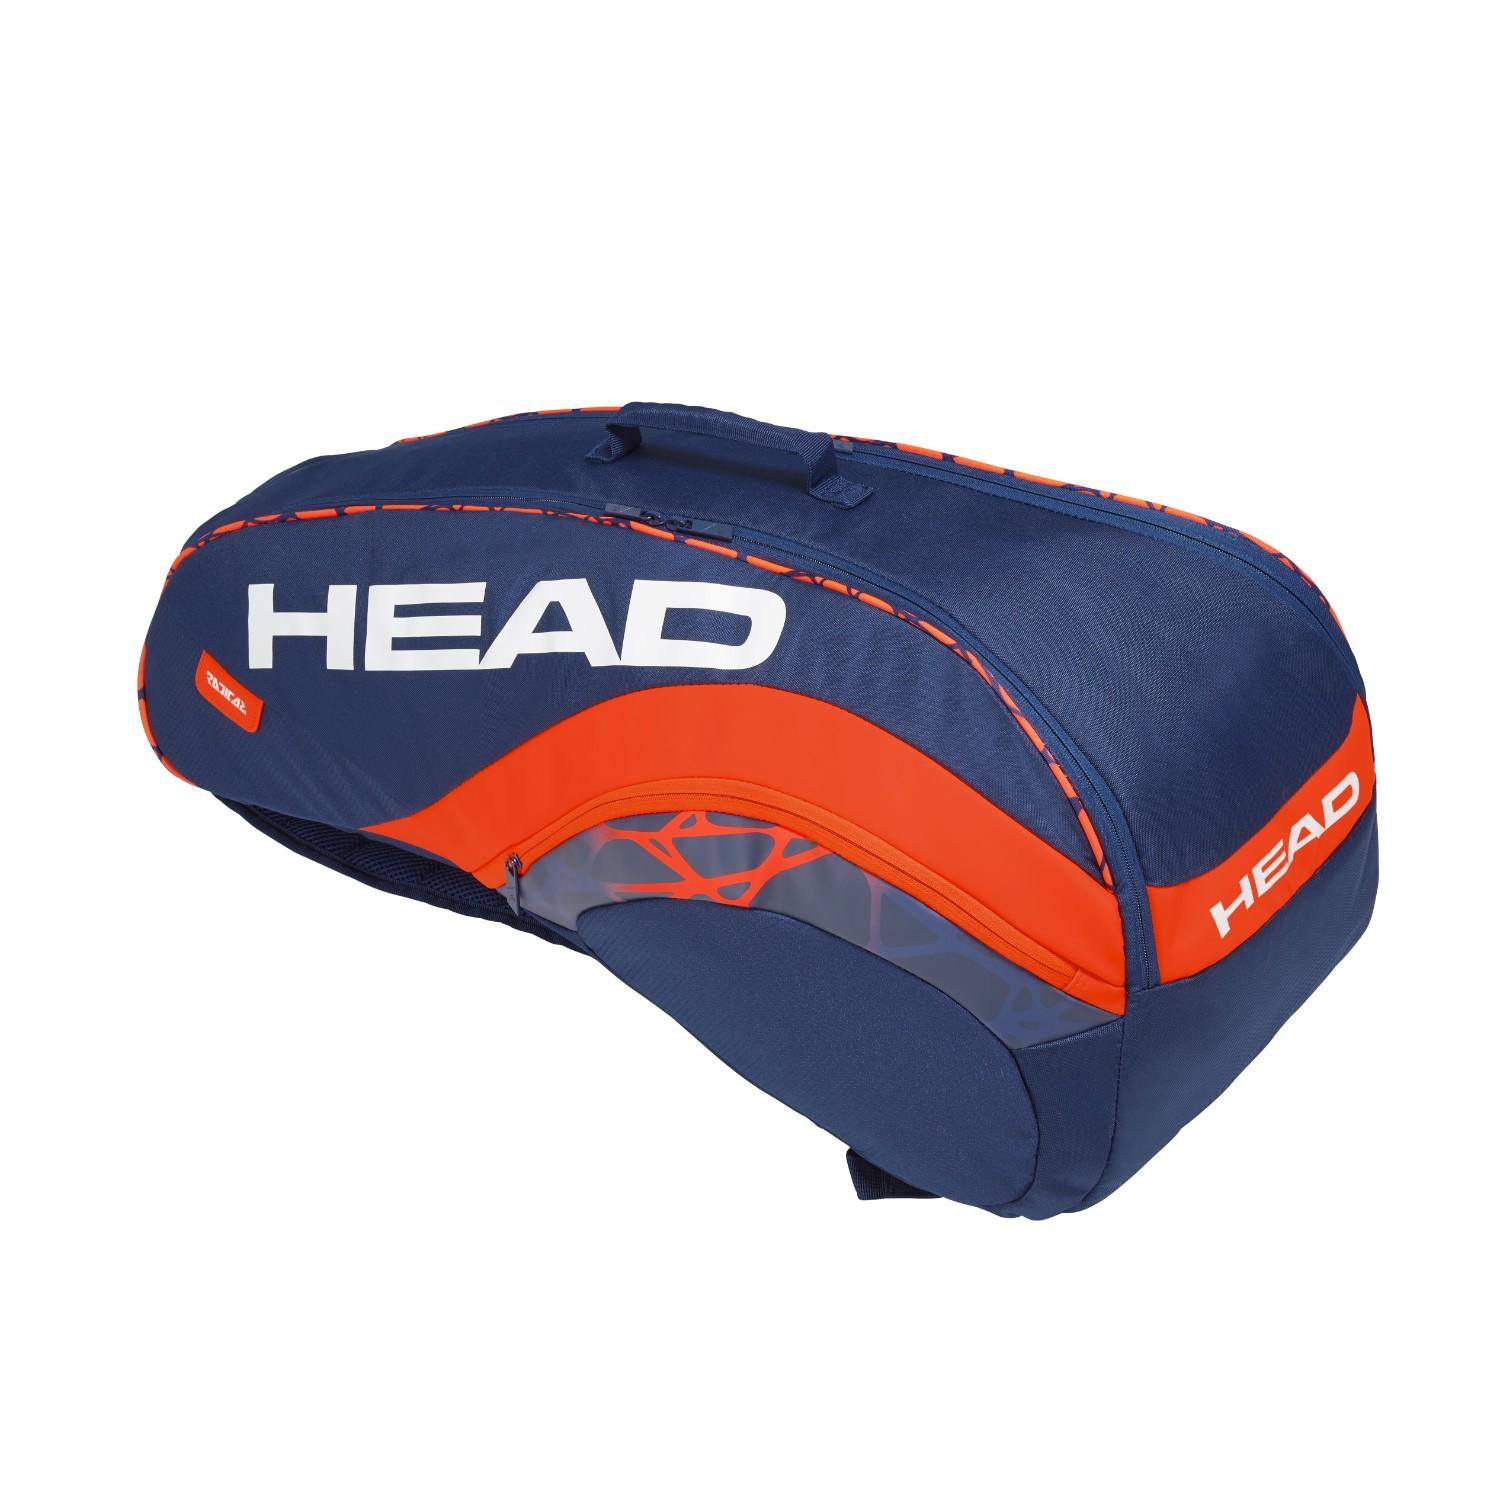 Head Radical Combi 6 Racket Tennis Bag By Head.